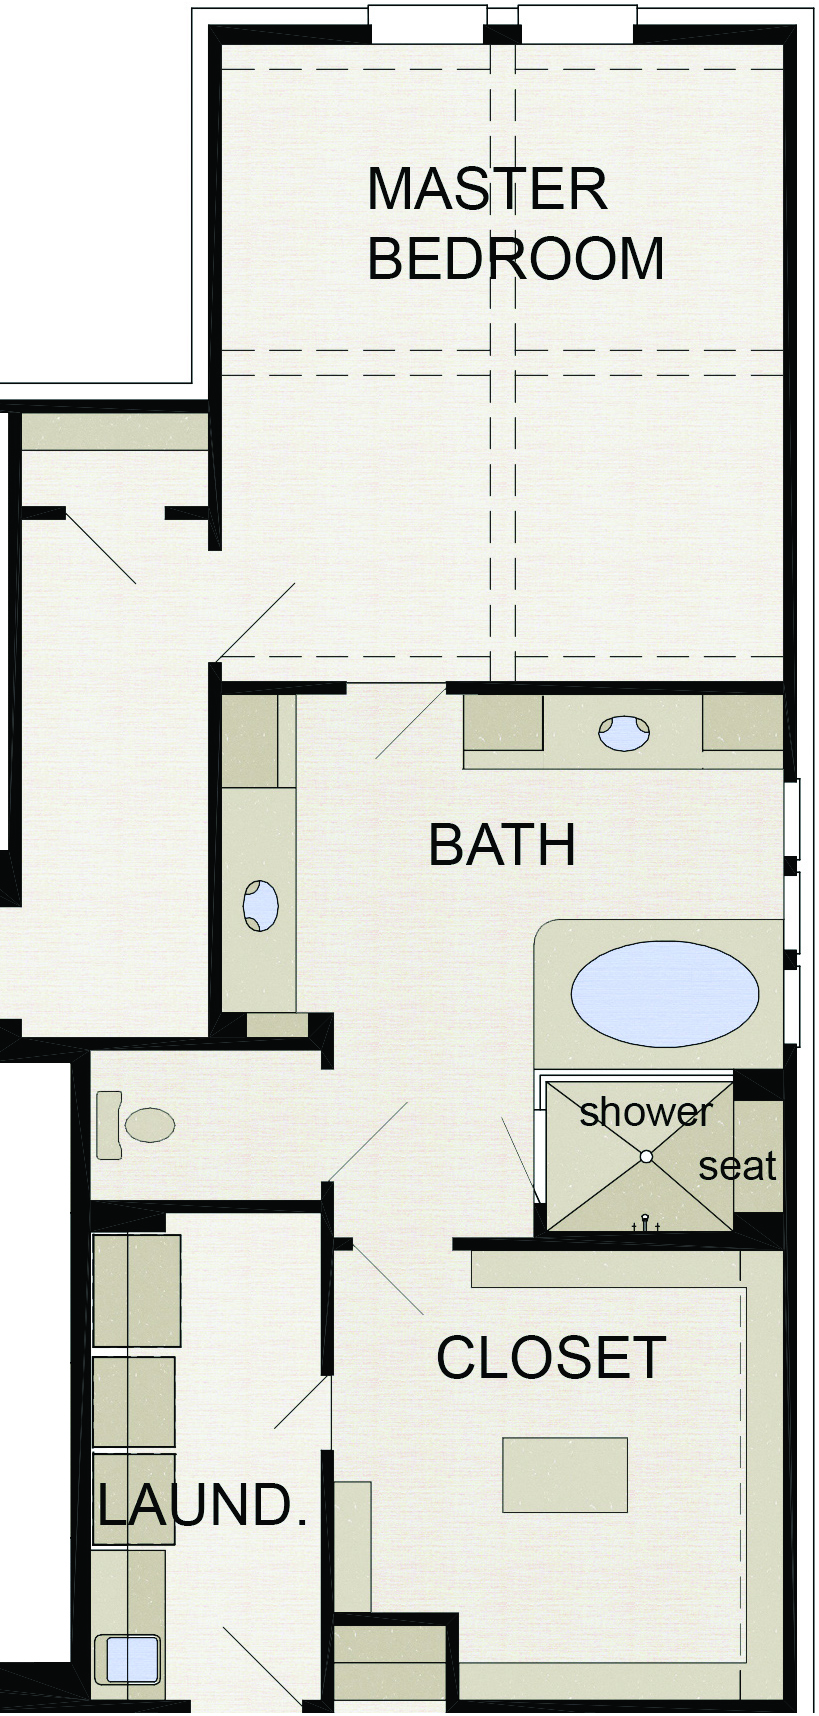 1 dual lavatories and linen storage 2 glass enclosed 60 by 48 inch shower with seat 3 spacious walk in closet 4 convenient access to laundry room